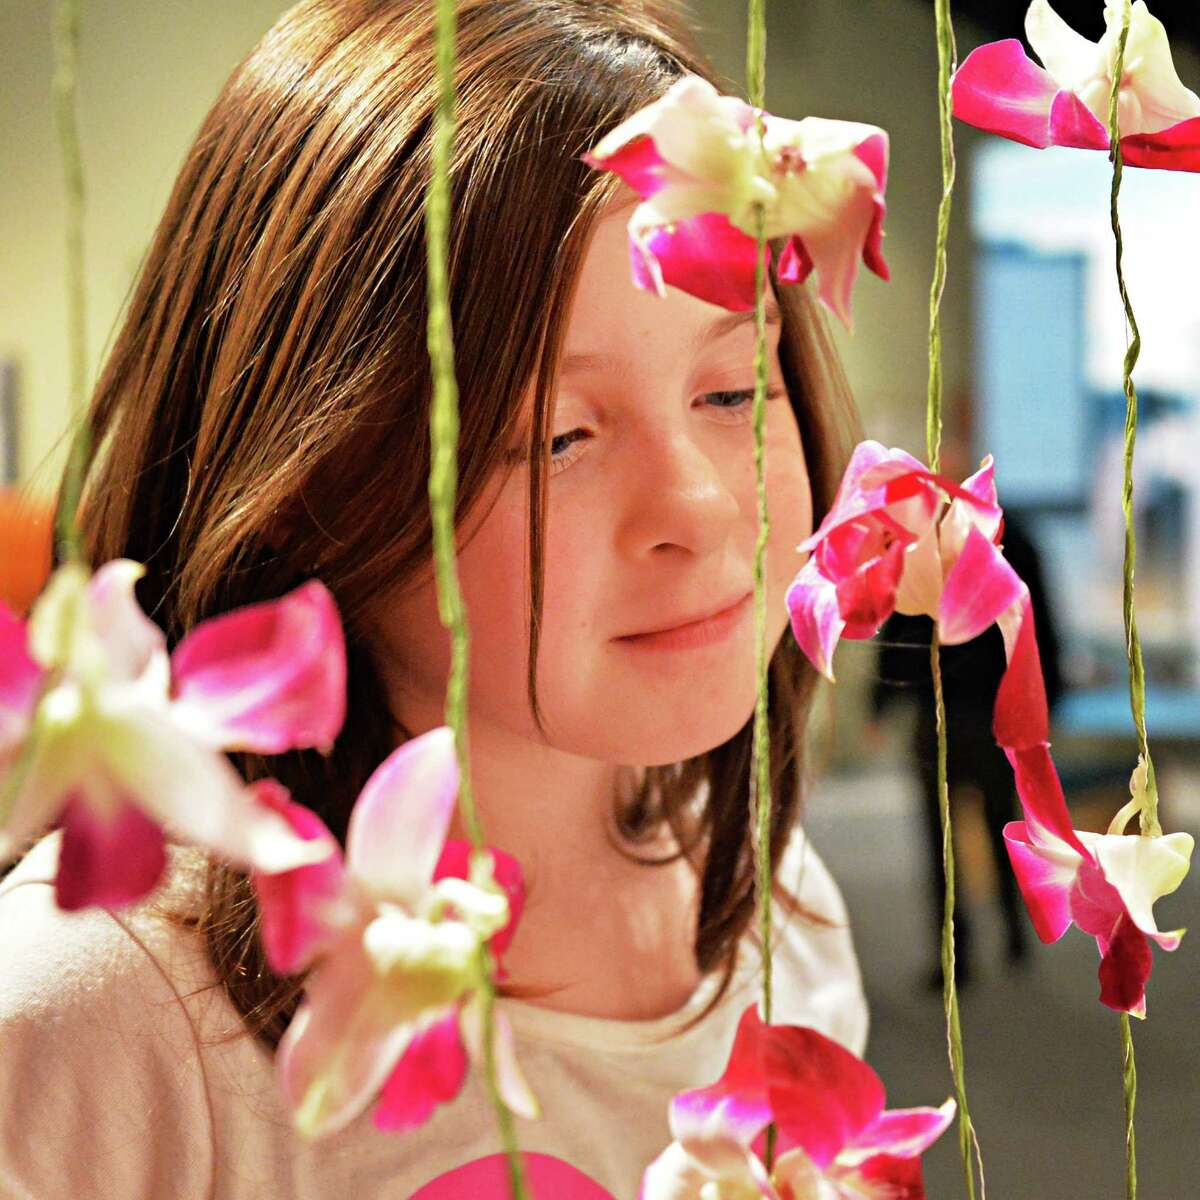 Eight-year-old Hannah Eamer-Dulin of Richmondville smells an orchid at the New York in Bloom annual fundraiser for educational programs for children at the New York State Museum Saturday Feb. 22, 2014, in Albany, NY. (John Carl D'Annibale / Times Union)